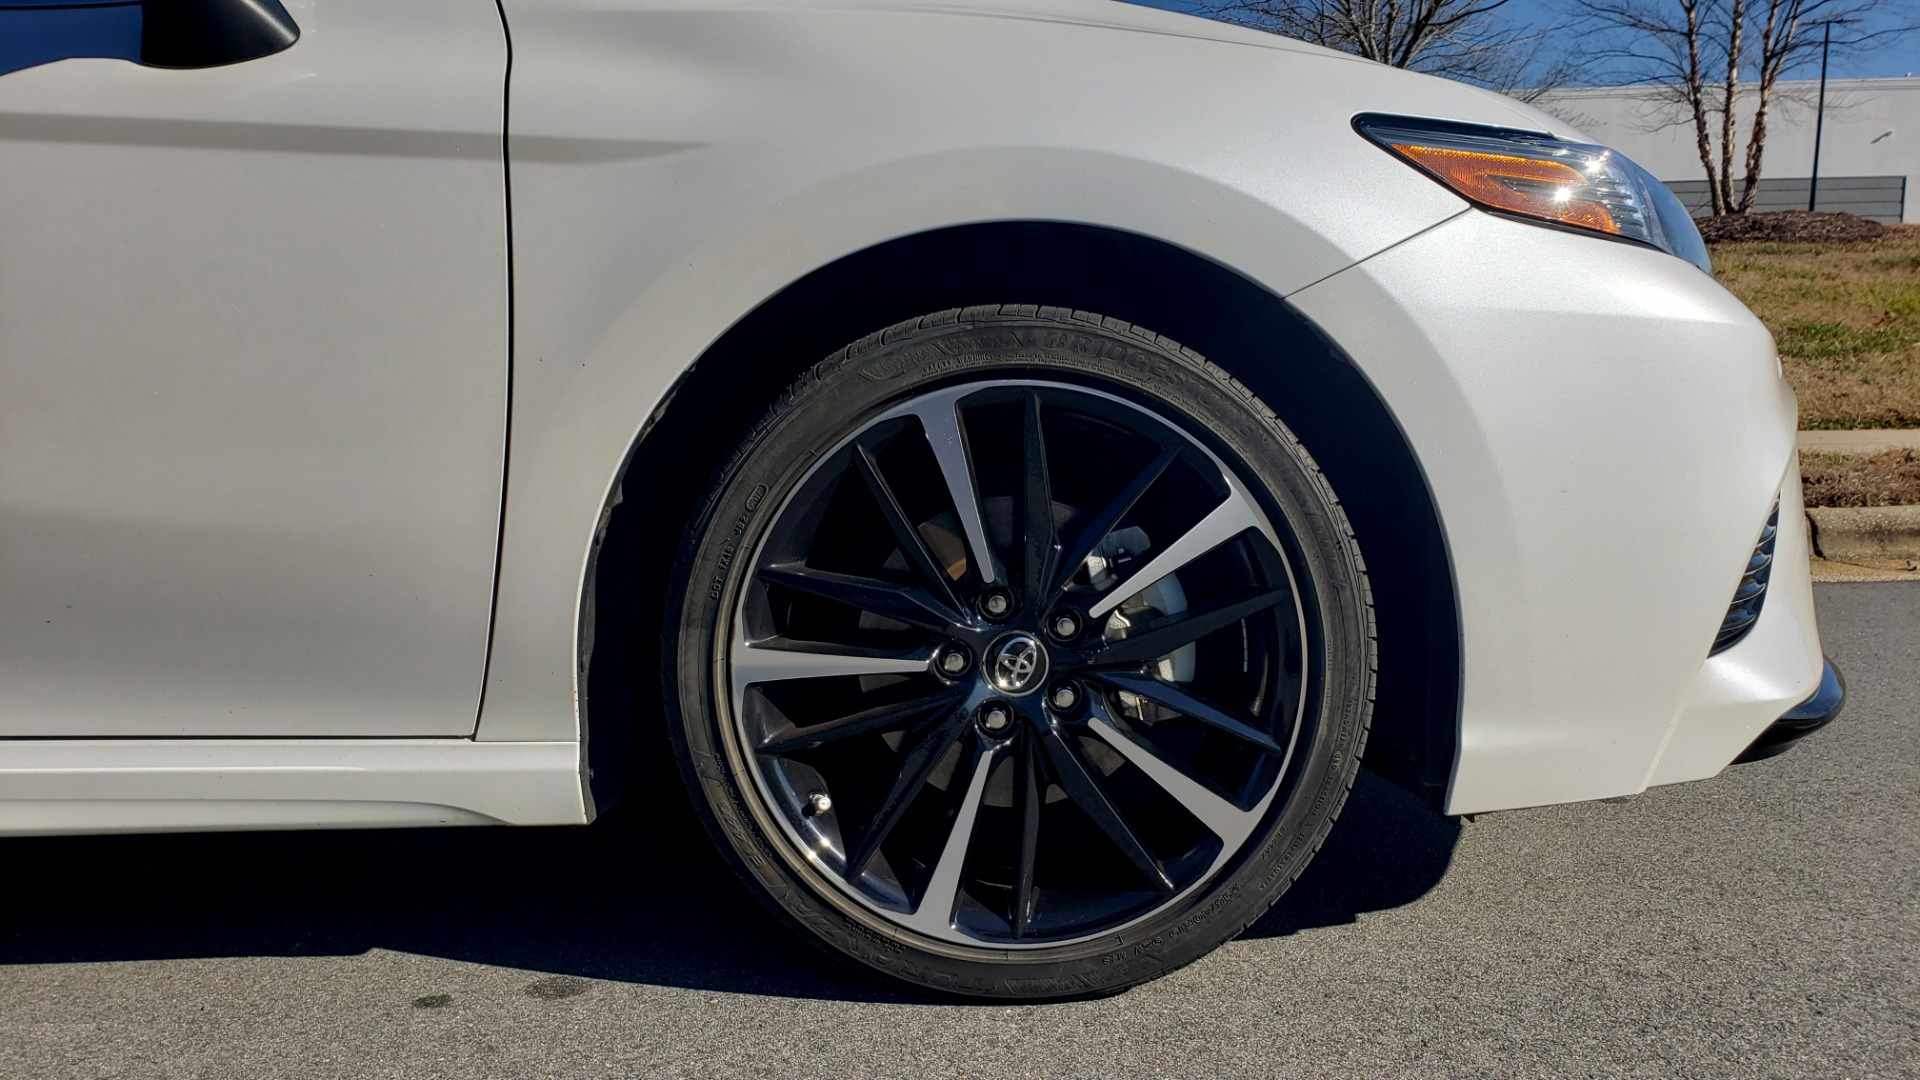 Used 2018 Toyota CAMRY XSE 2.5L SEDAN / 8-SPD AUTO / PANO-ROOF / 19IN WHEELS for sale $22,995 at Formula Imports in Charlotte NC 28227 80